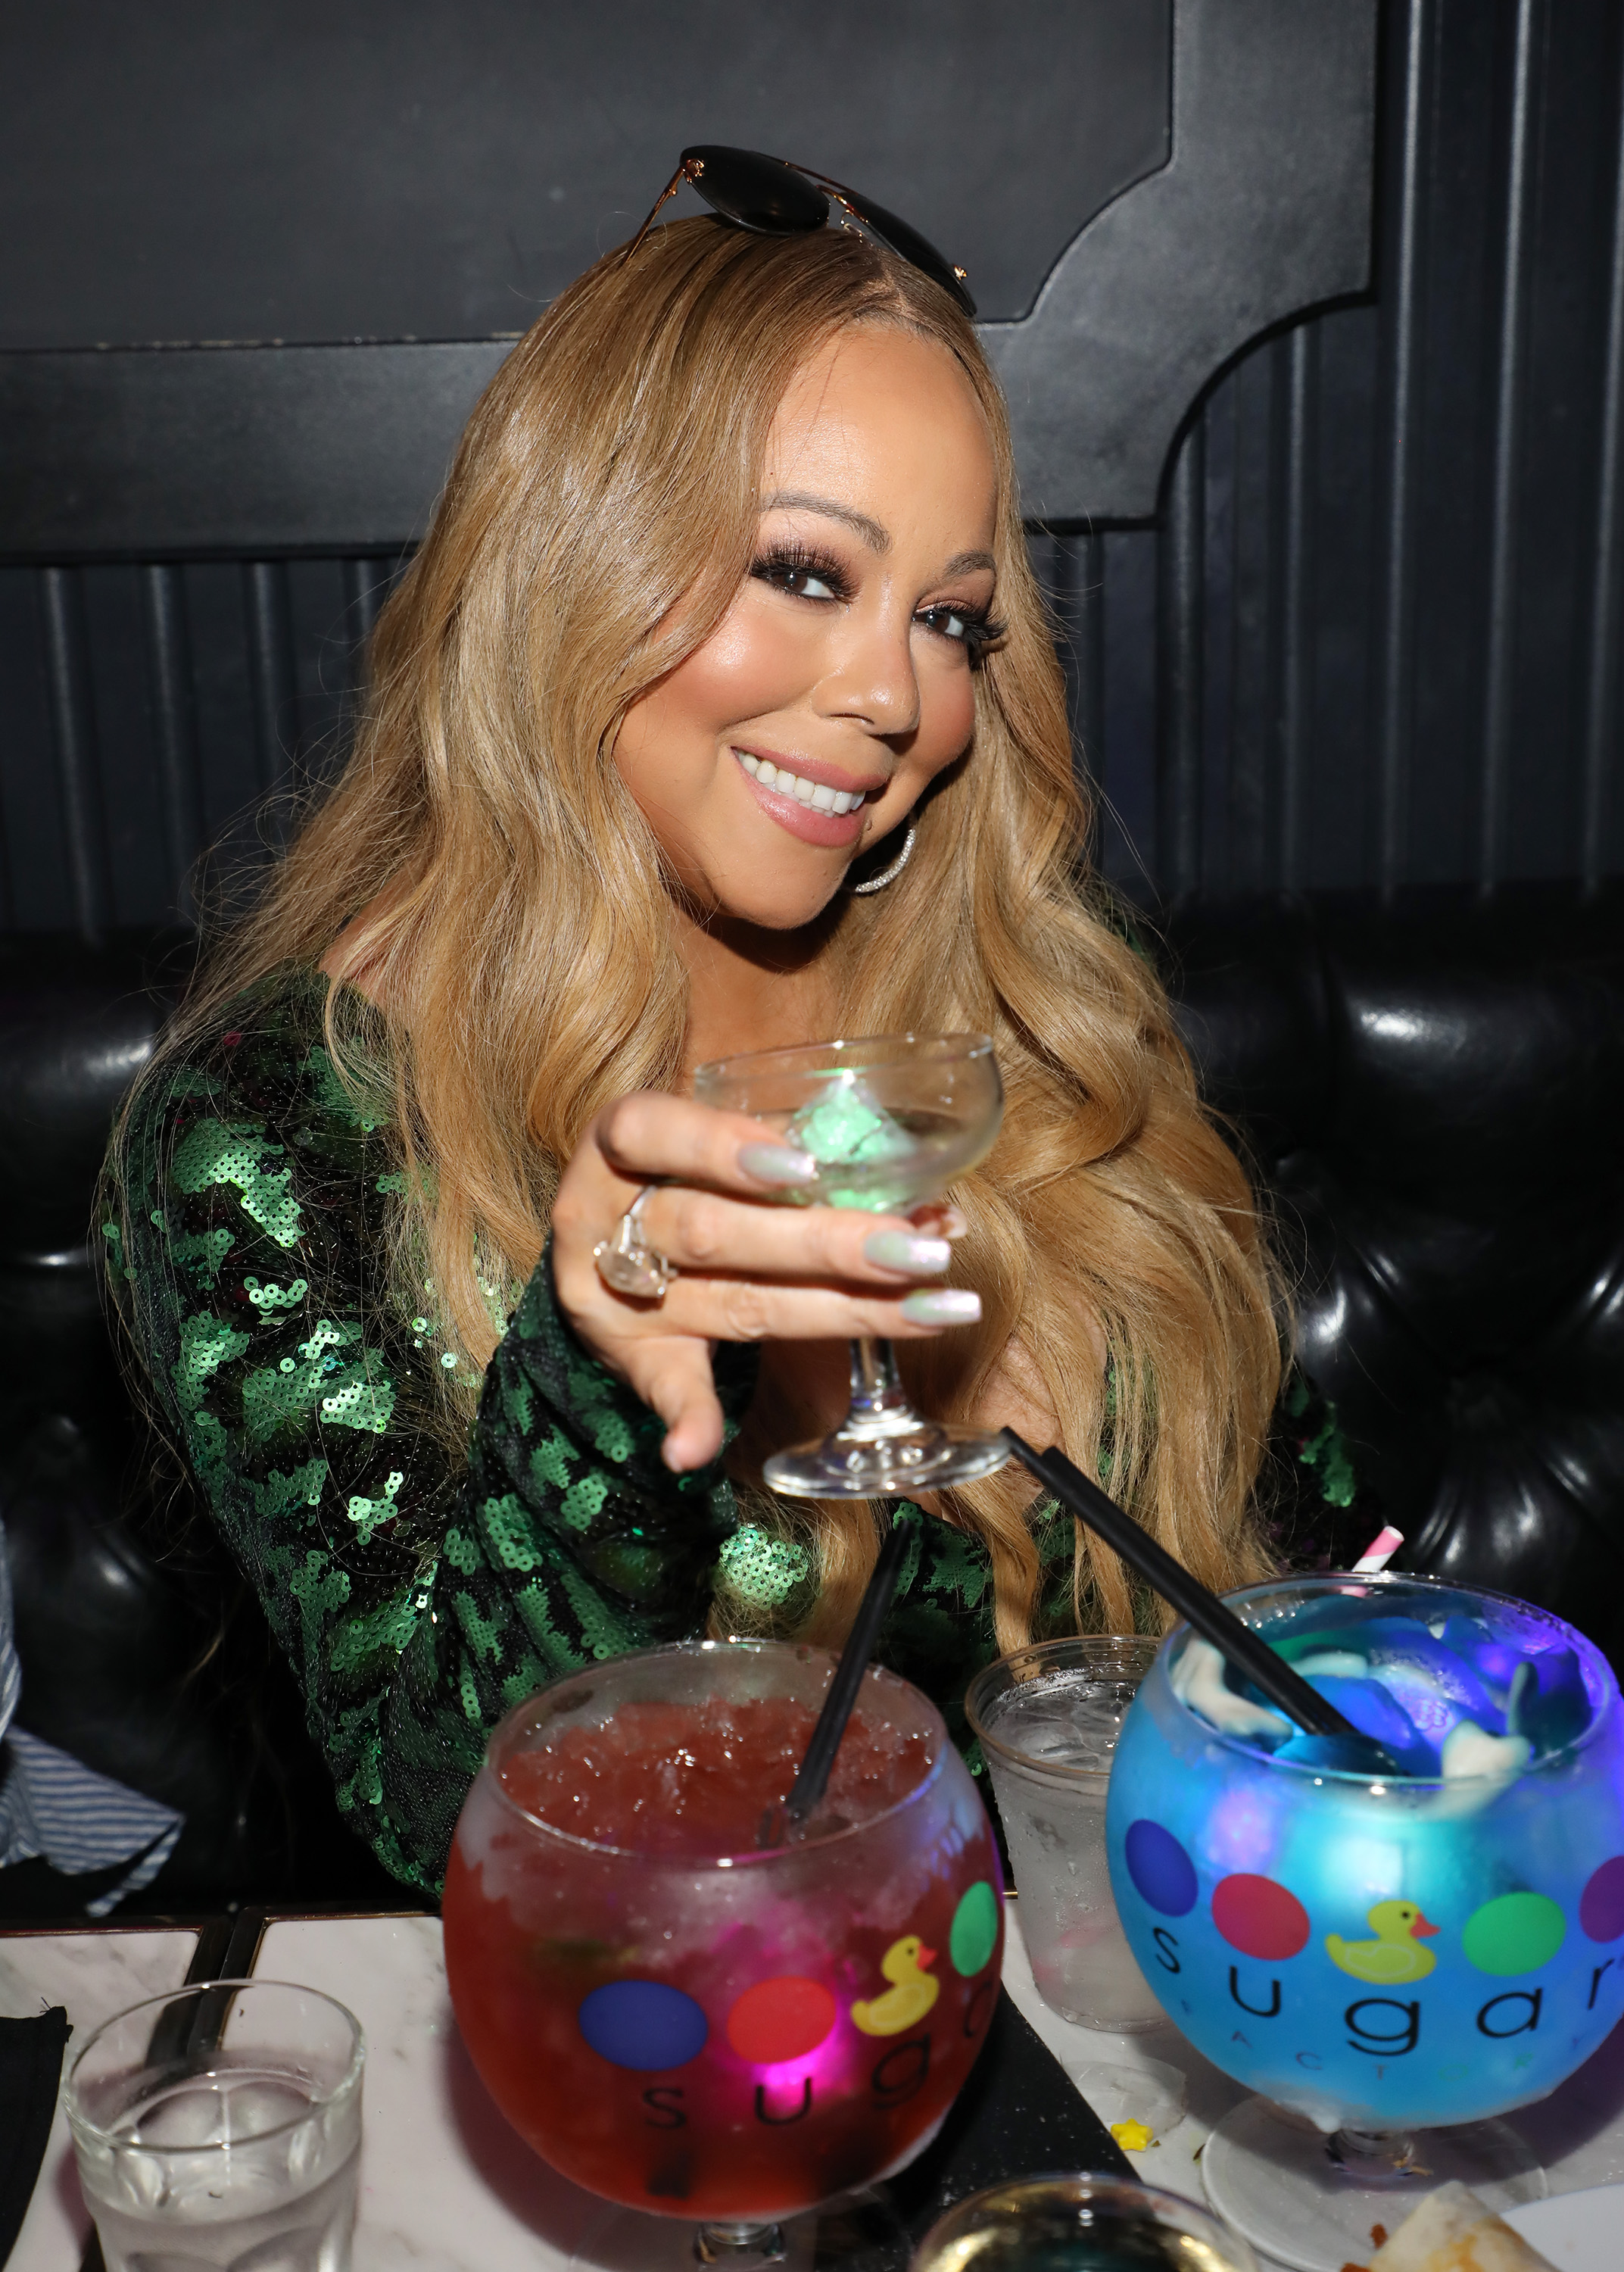 Mariah Carey Concert Afterparty At Sugar Factory American Brasserie On Ocean Drive In Miami